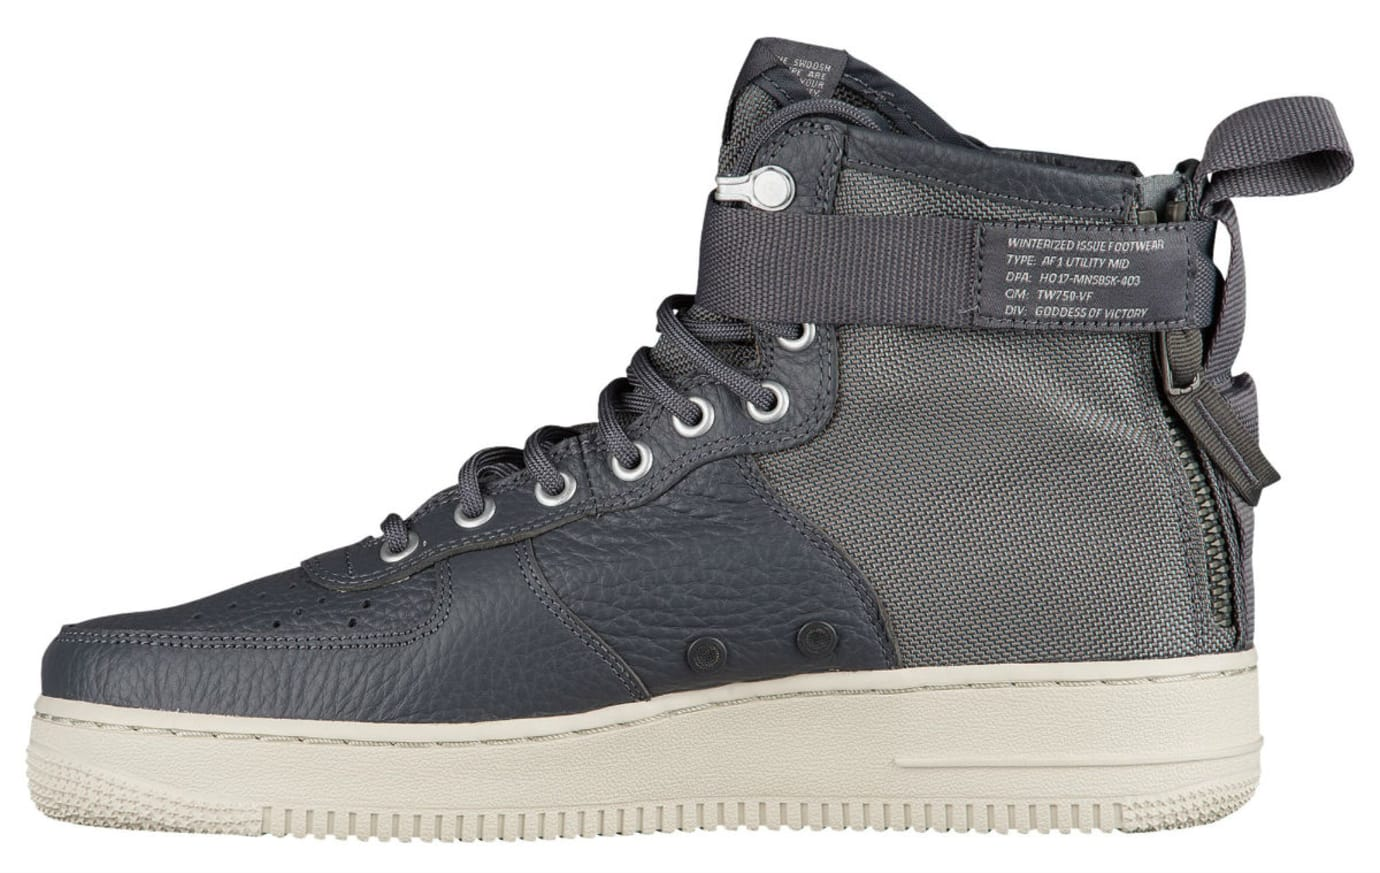 Nike SF Air Force 1 Mid Dark Grey Release Date Medial 917753-004